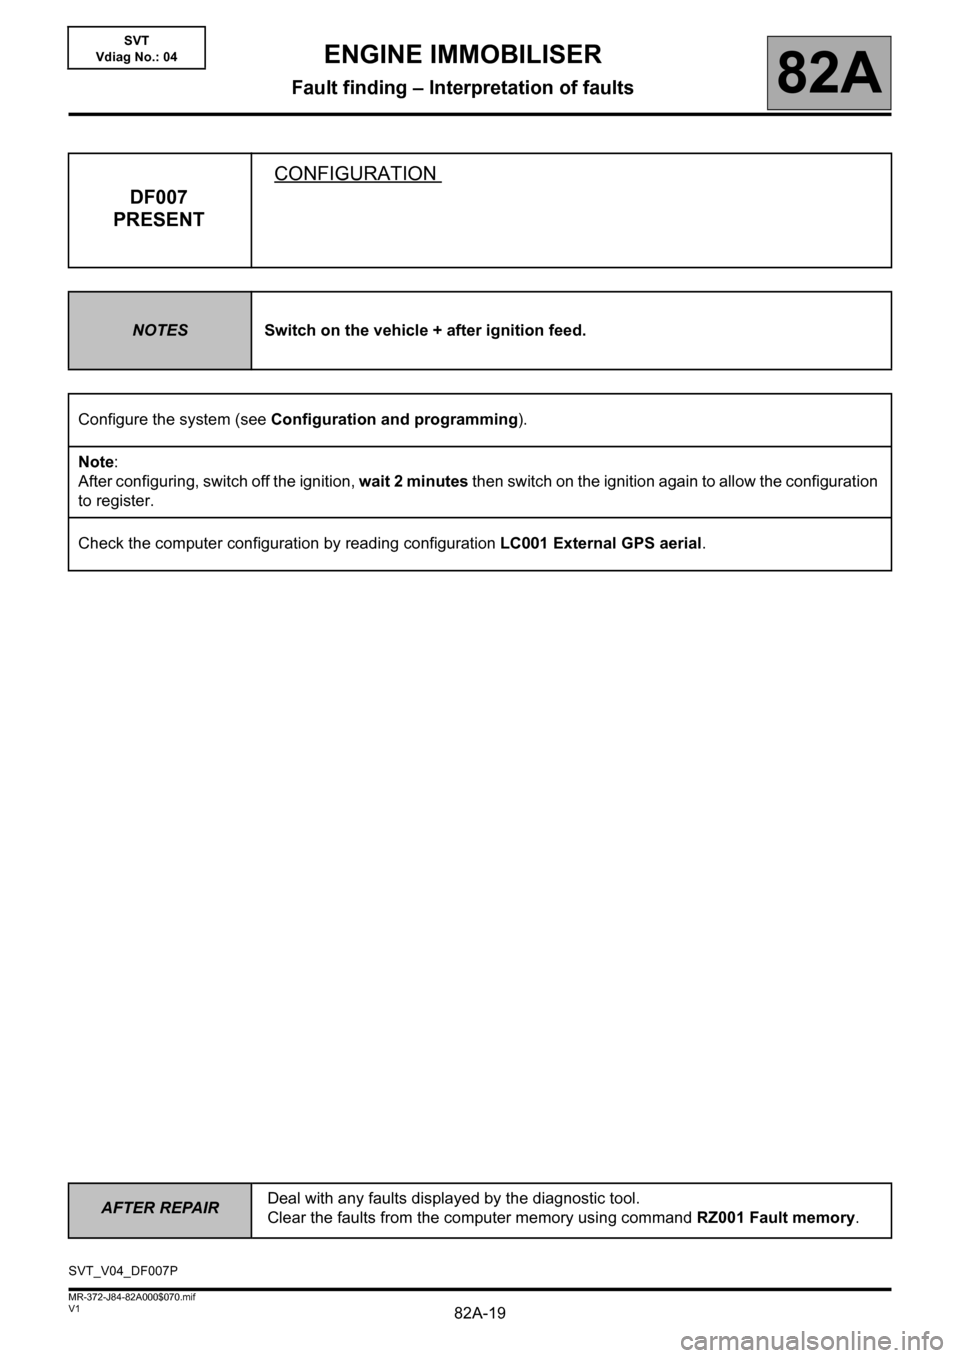 RENAULT SCENIC 2013 J95 / 3.G Electrical Equipment Immobiliser Workshop Manual, Page 19